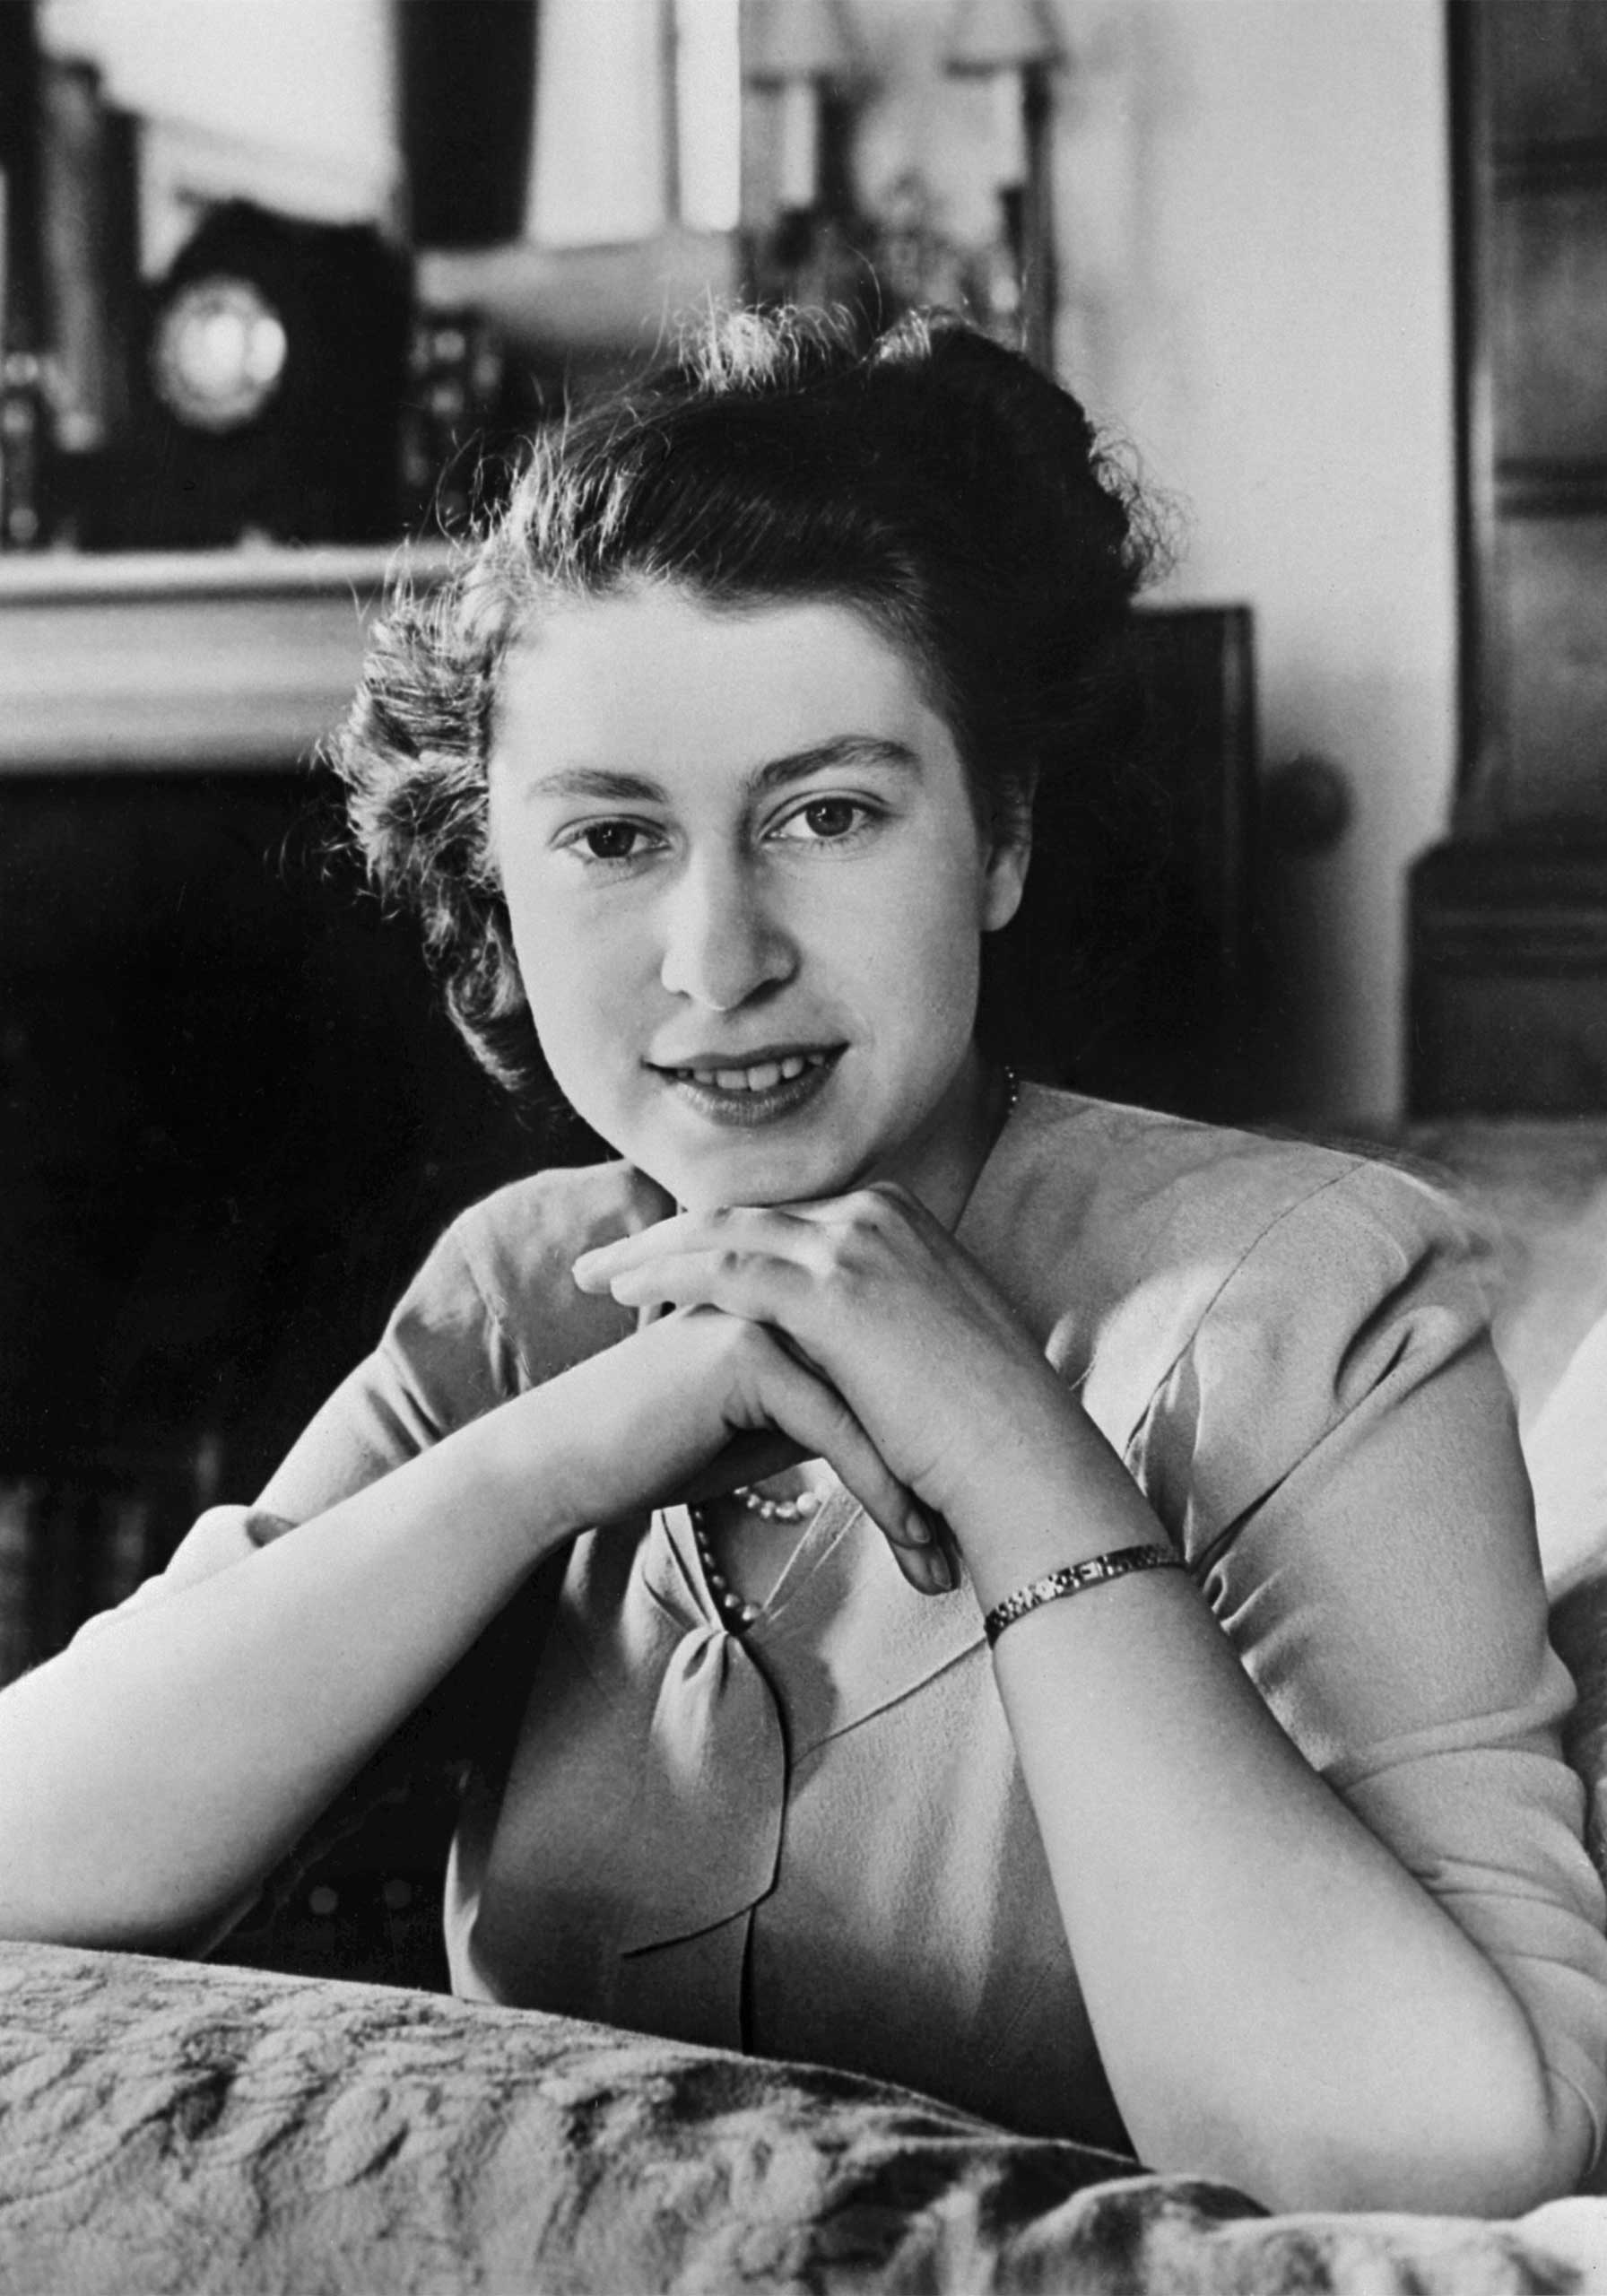 Official portrait of then-Princess Elizabeth, taken three days before her 21st birthday in April 1947.